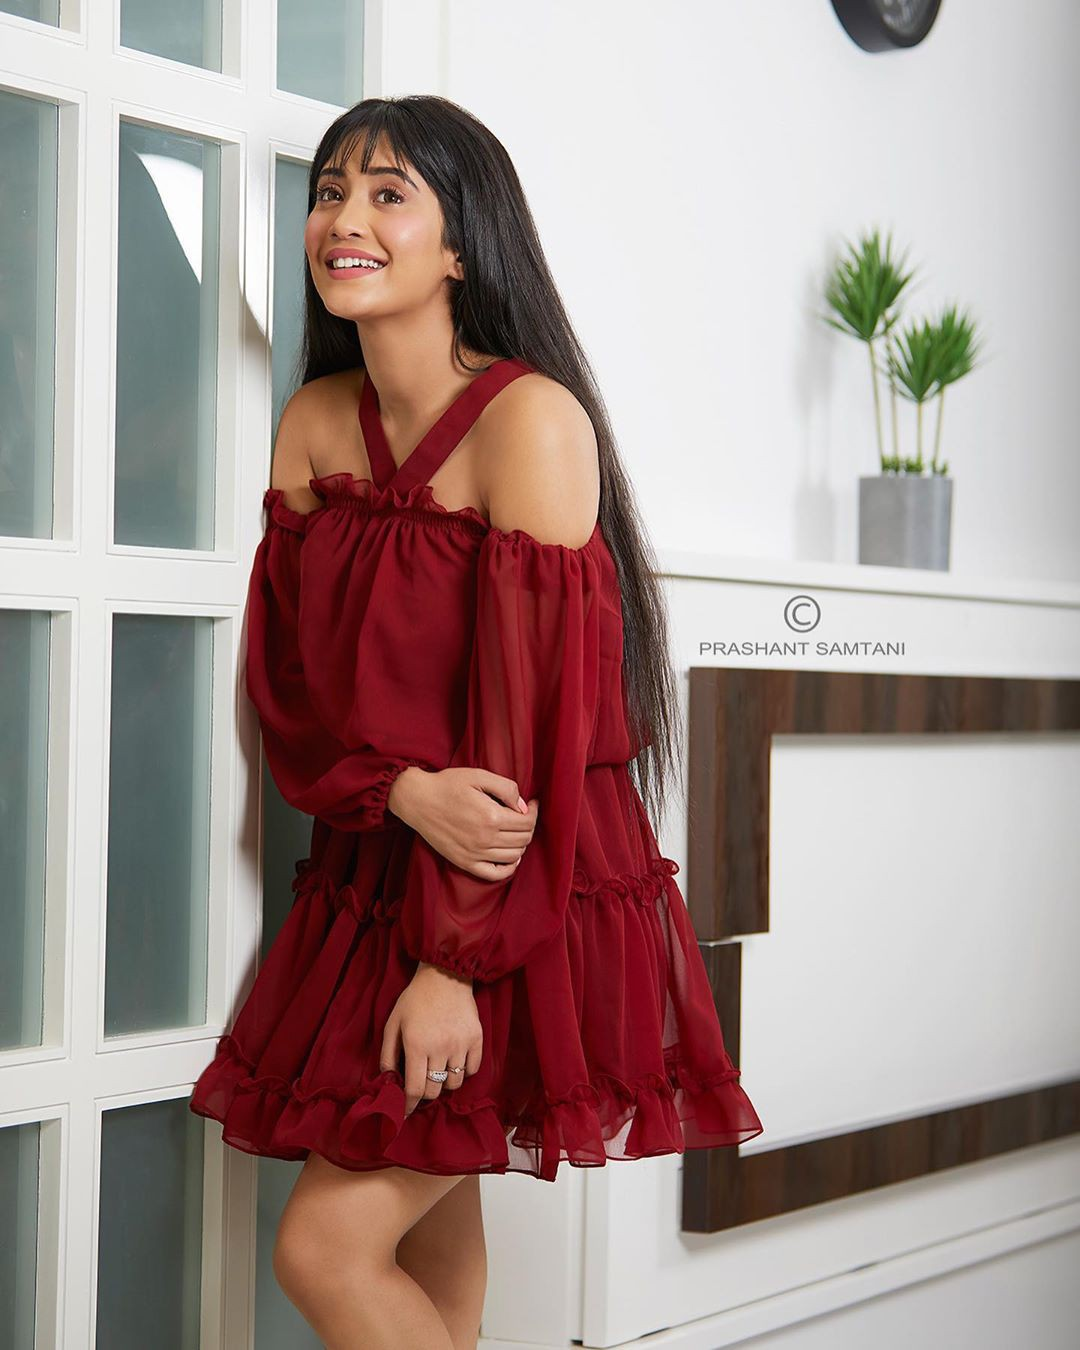 maroon colour outfit ideas 2020 with dress, hot girls thighs, legs picture